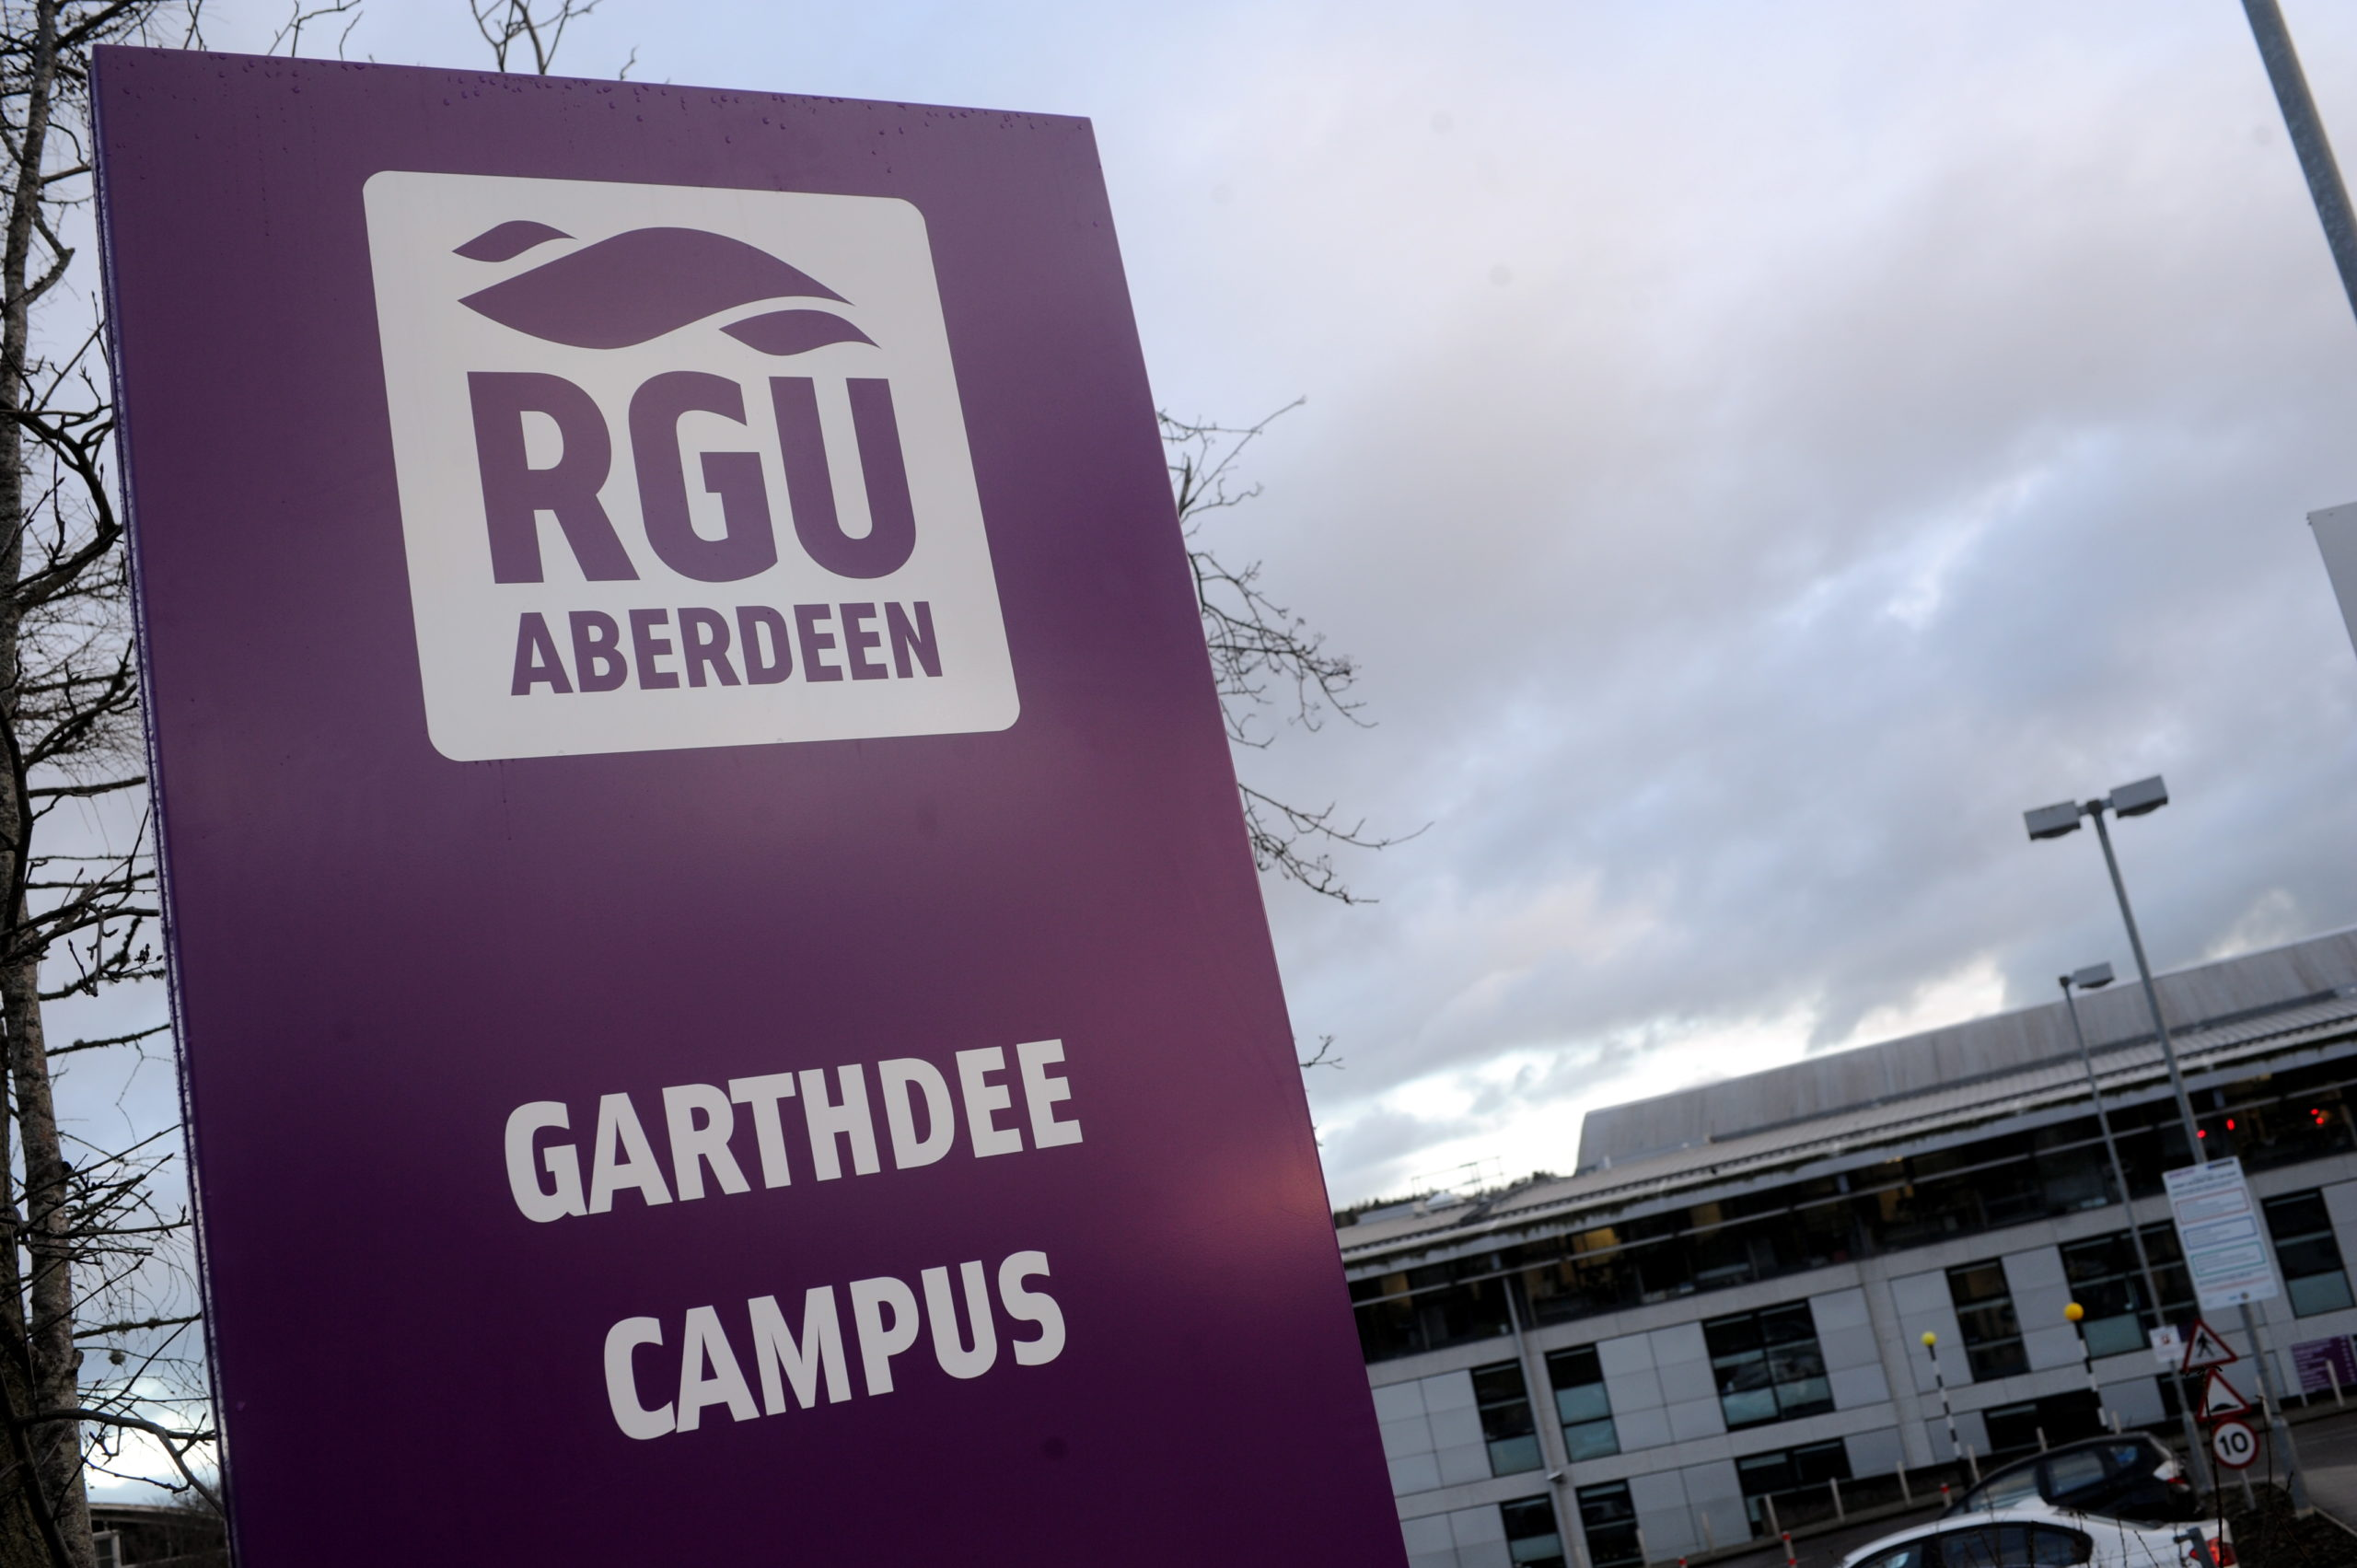 Robert Gordon University (RGU) Campus on Garthdee Road, Aberdeen.